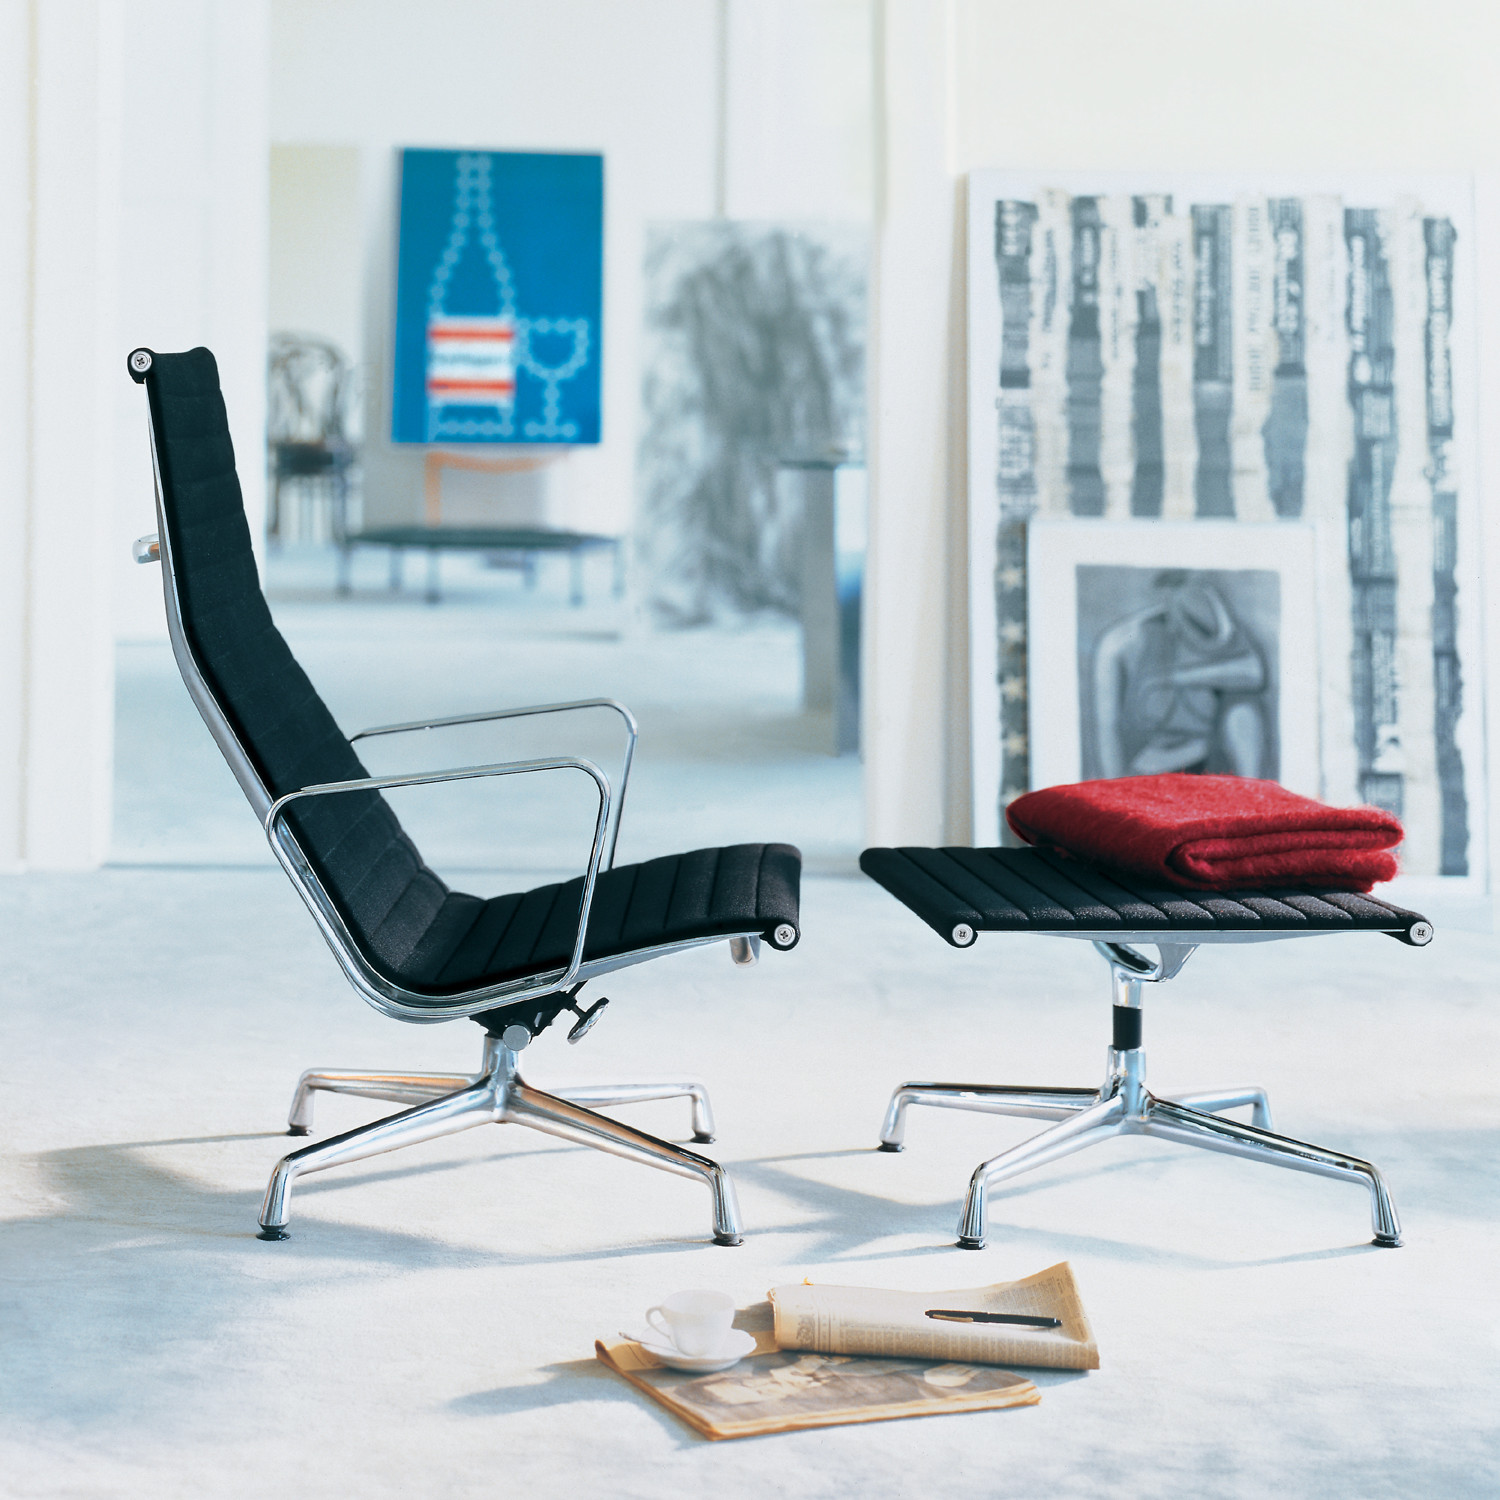 Eames Lounge Chair and Stool